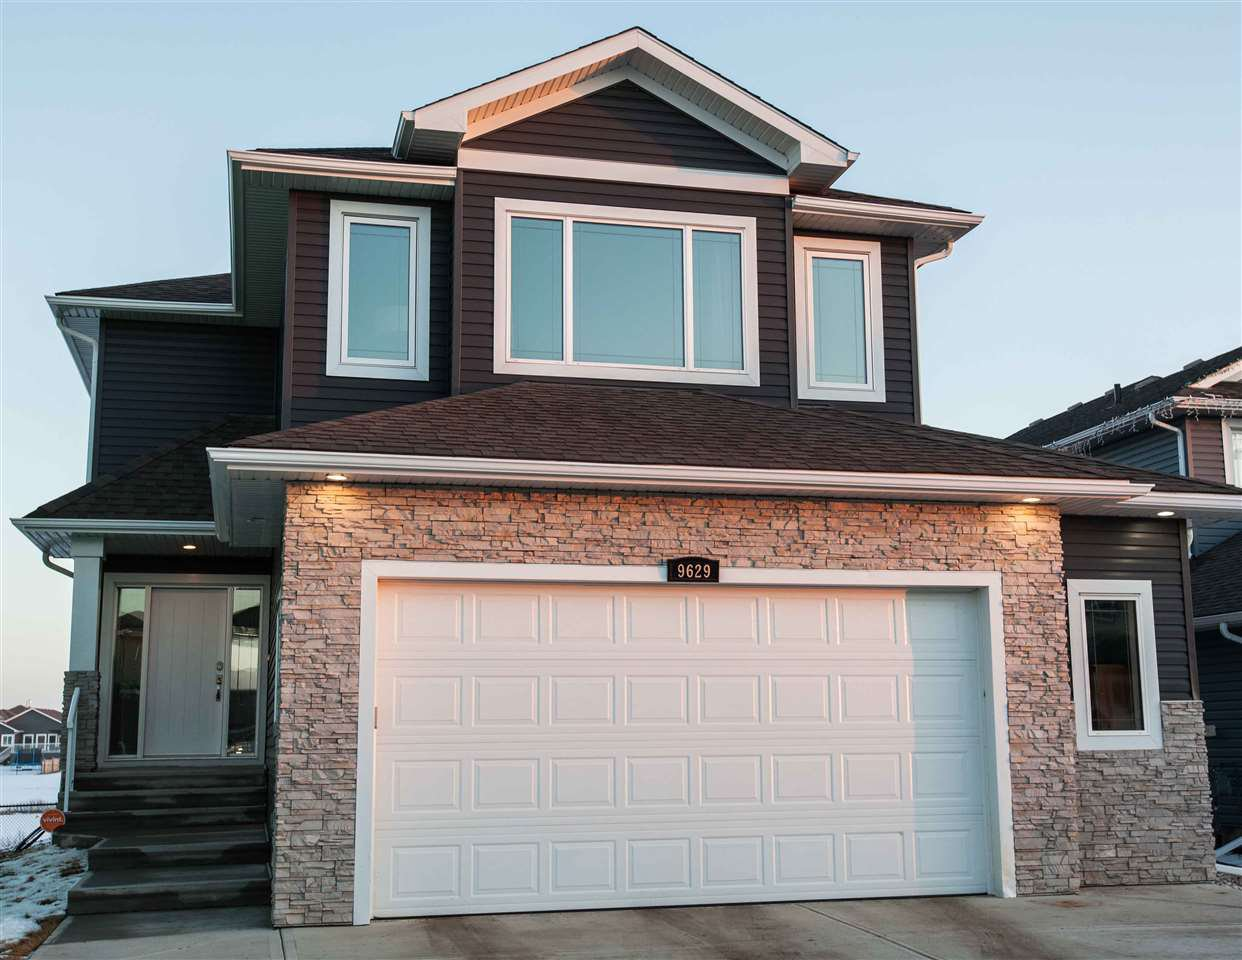 Main Photo: 9629 106 Avenue: Morinville House for sale : MLS®# E4192189